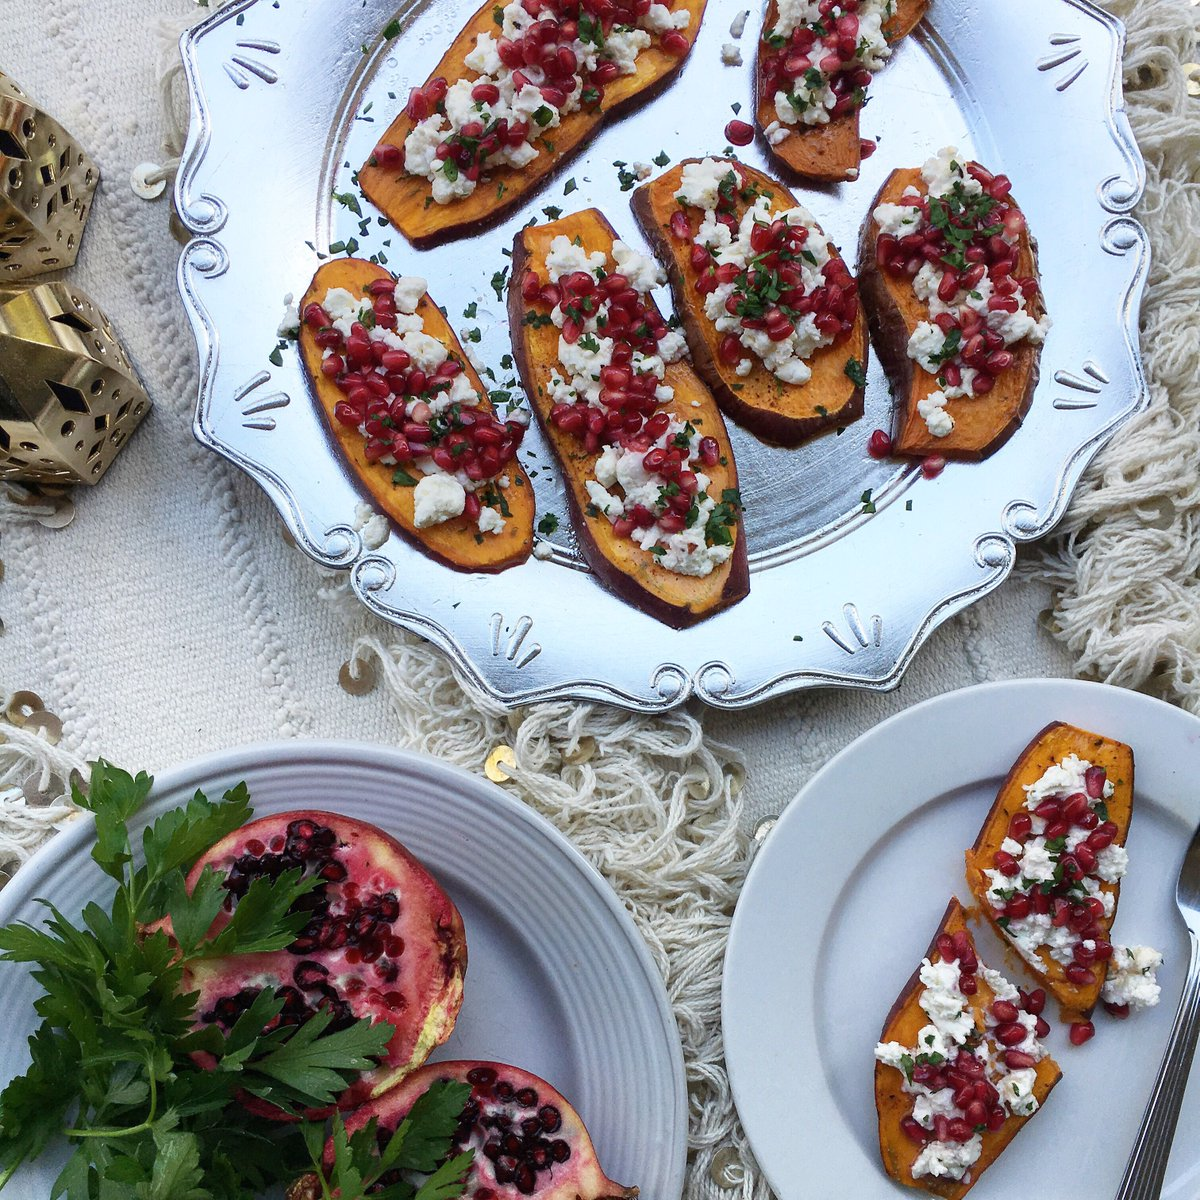 As delicious as they are beautiful, my Sweet Potato Toast's are seriously addicting! https://t.co/LSWBhBJj7H https://t.co/yzRrDIzDUm